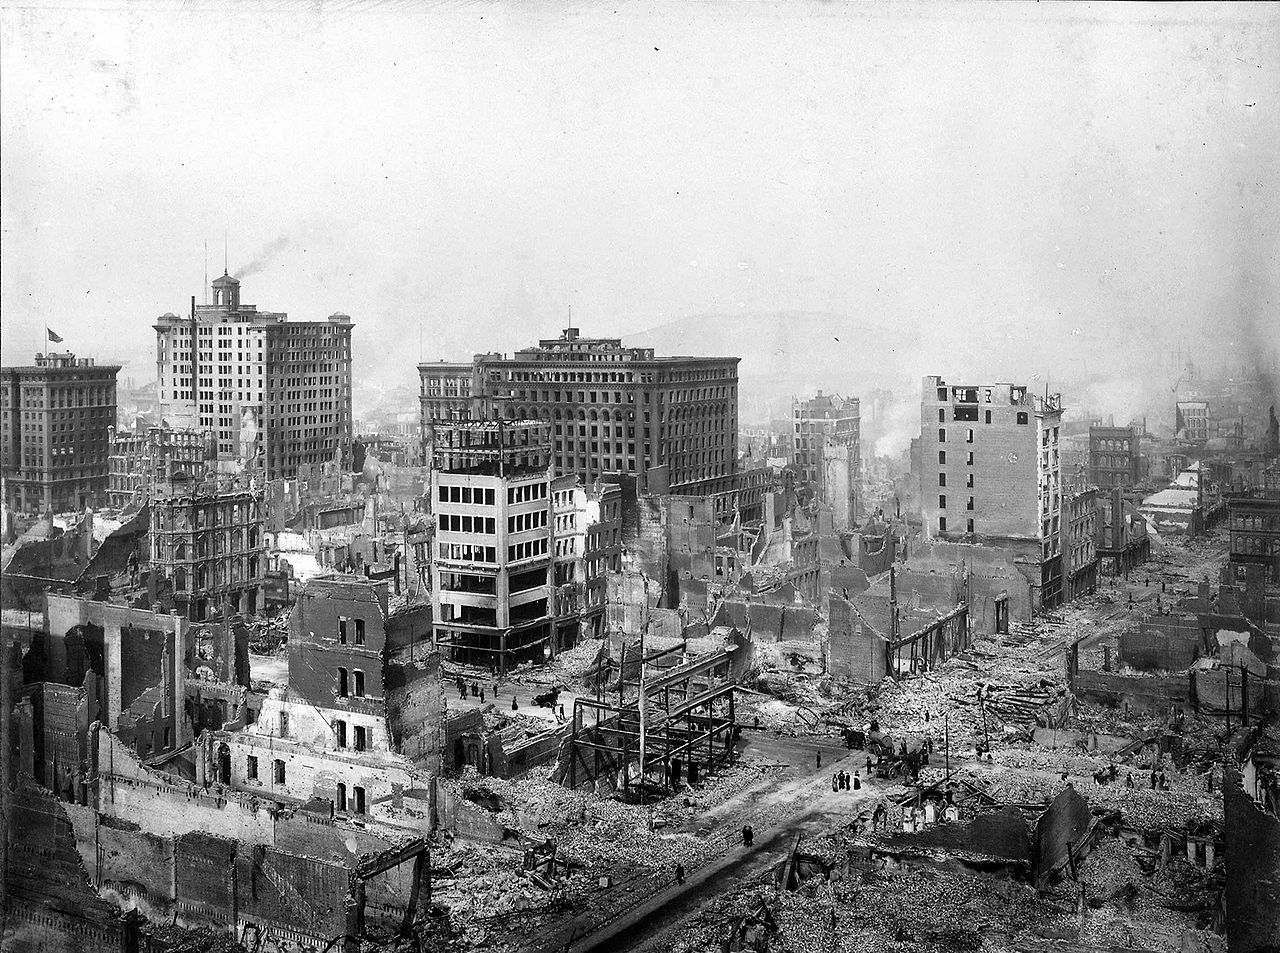 an analysis of earthquake in san francisco Meet the major san francisco players at one of our upcoming events since the 1989 loma prieta earthquake, buildings have gotten stronger and cities around the bay area and the state have adopted .